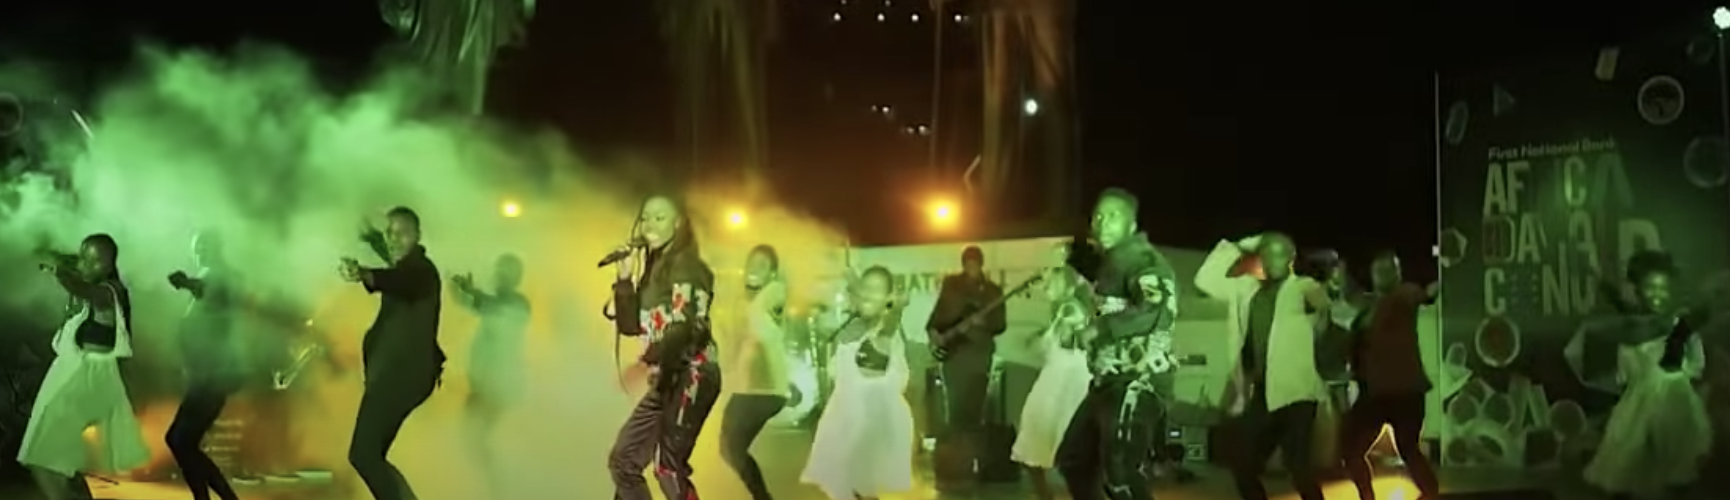 Watch Khoisan &  Mophato Dance Theatre's FNB Africa Day Performances